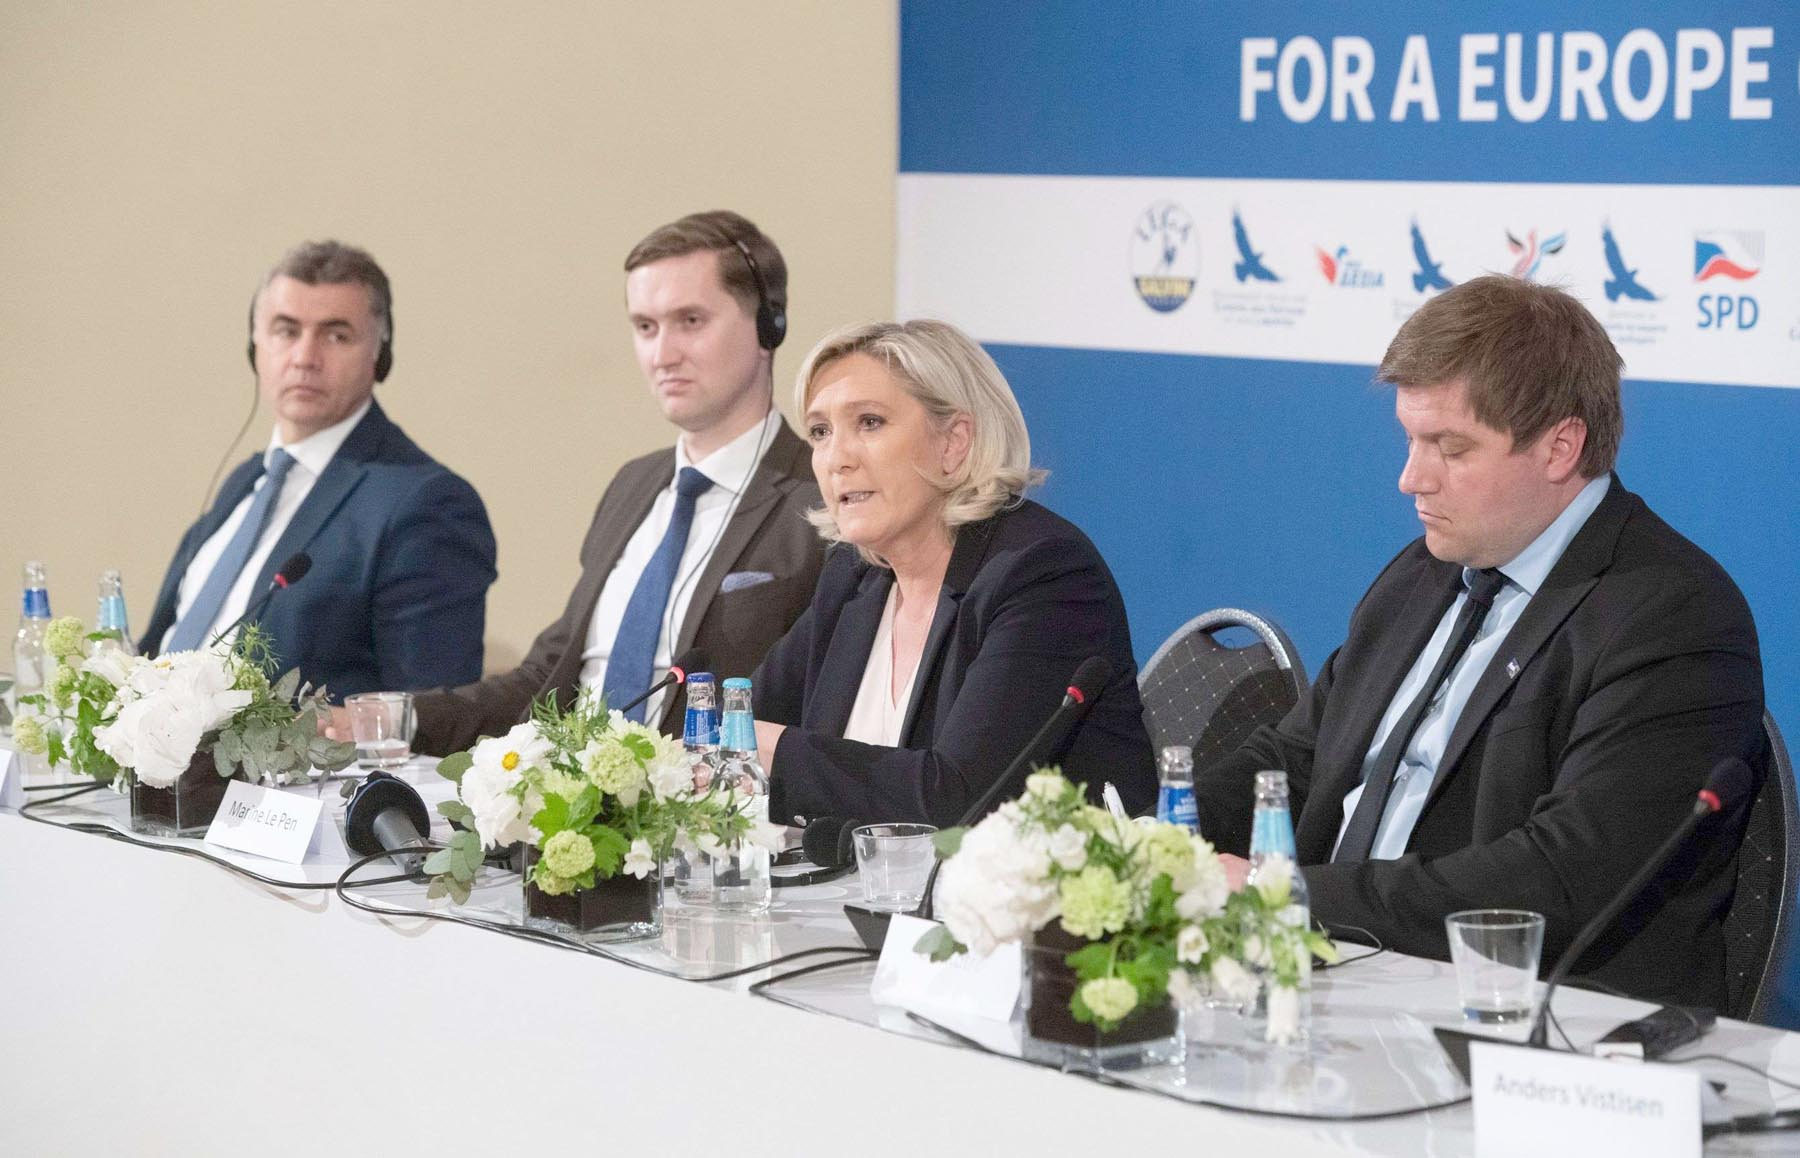 New bloc. (L-R): Manuel Vescovi of Italy's League; Jaak Madison, deputy chairman of the Conservative People's Party of Estonia; French far-right National Rally party leader Marine Le Pen; and Finns Party member Olli Kotro, a candidate in the European Parliament elections, give a news conference in Tallinn, Estonia, May 14.      (AFP)